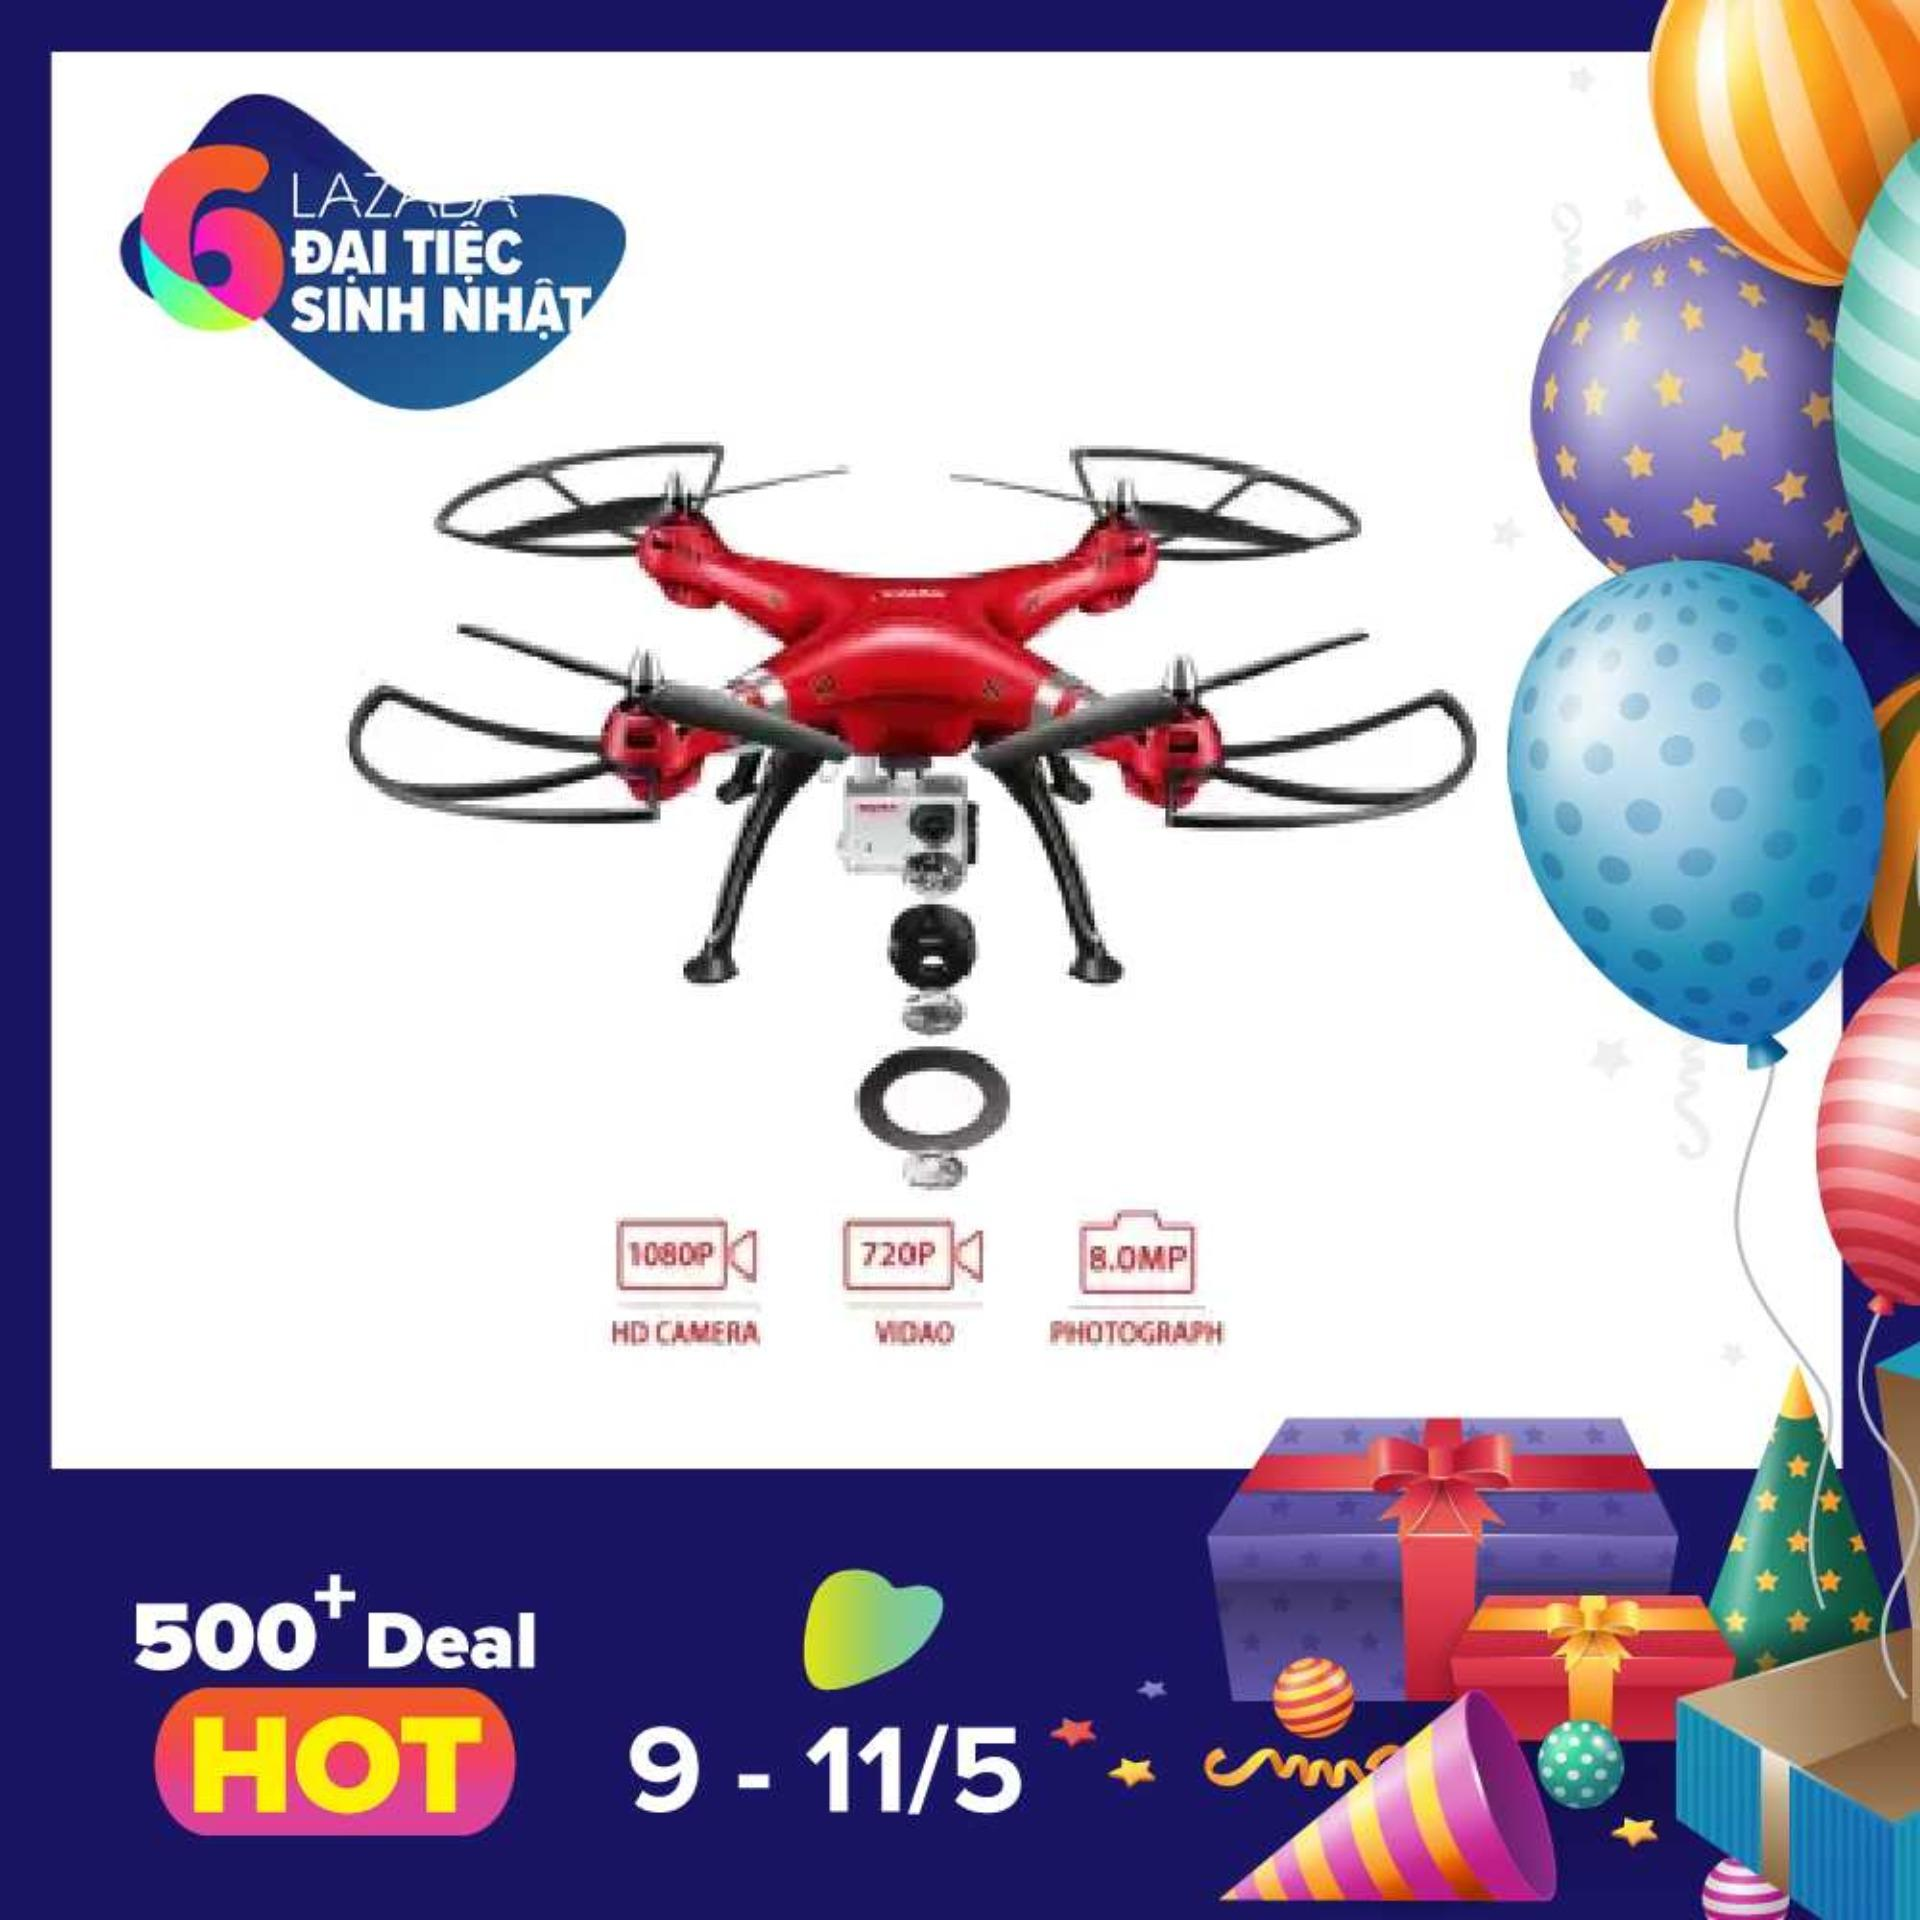 Giá Bán May Bay 4 Canh Drone Cỡ Lớn Syma X8Hg Camera Sieu Net 1080P 8Mp Camera And High Hold Mode 2 4G 4Ch 6Axis Rc Quadcopter Nhãn Hiệu Syma